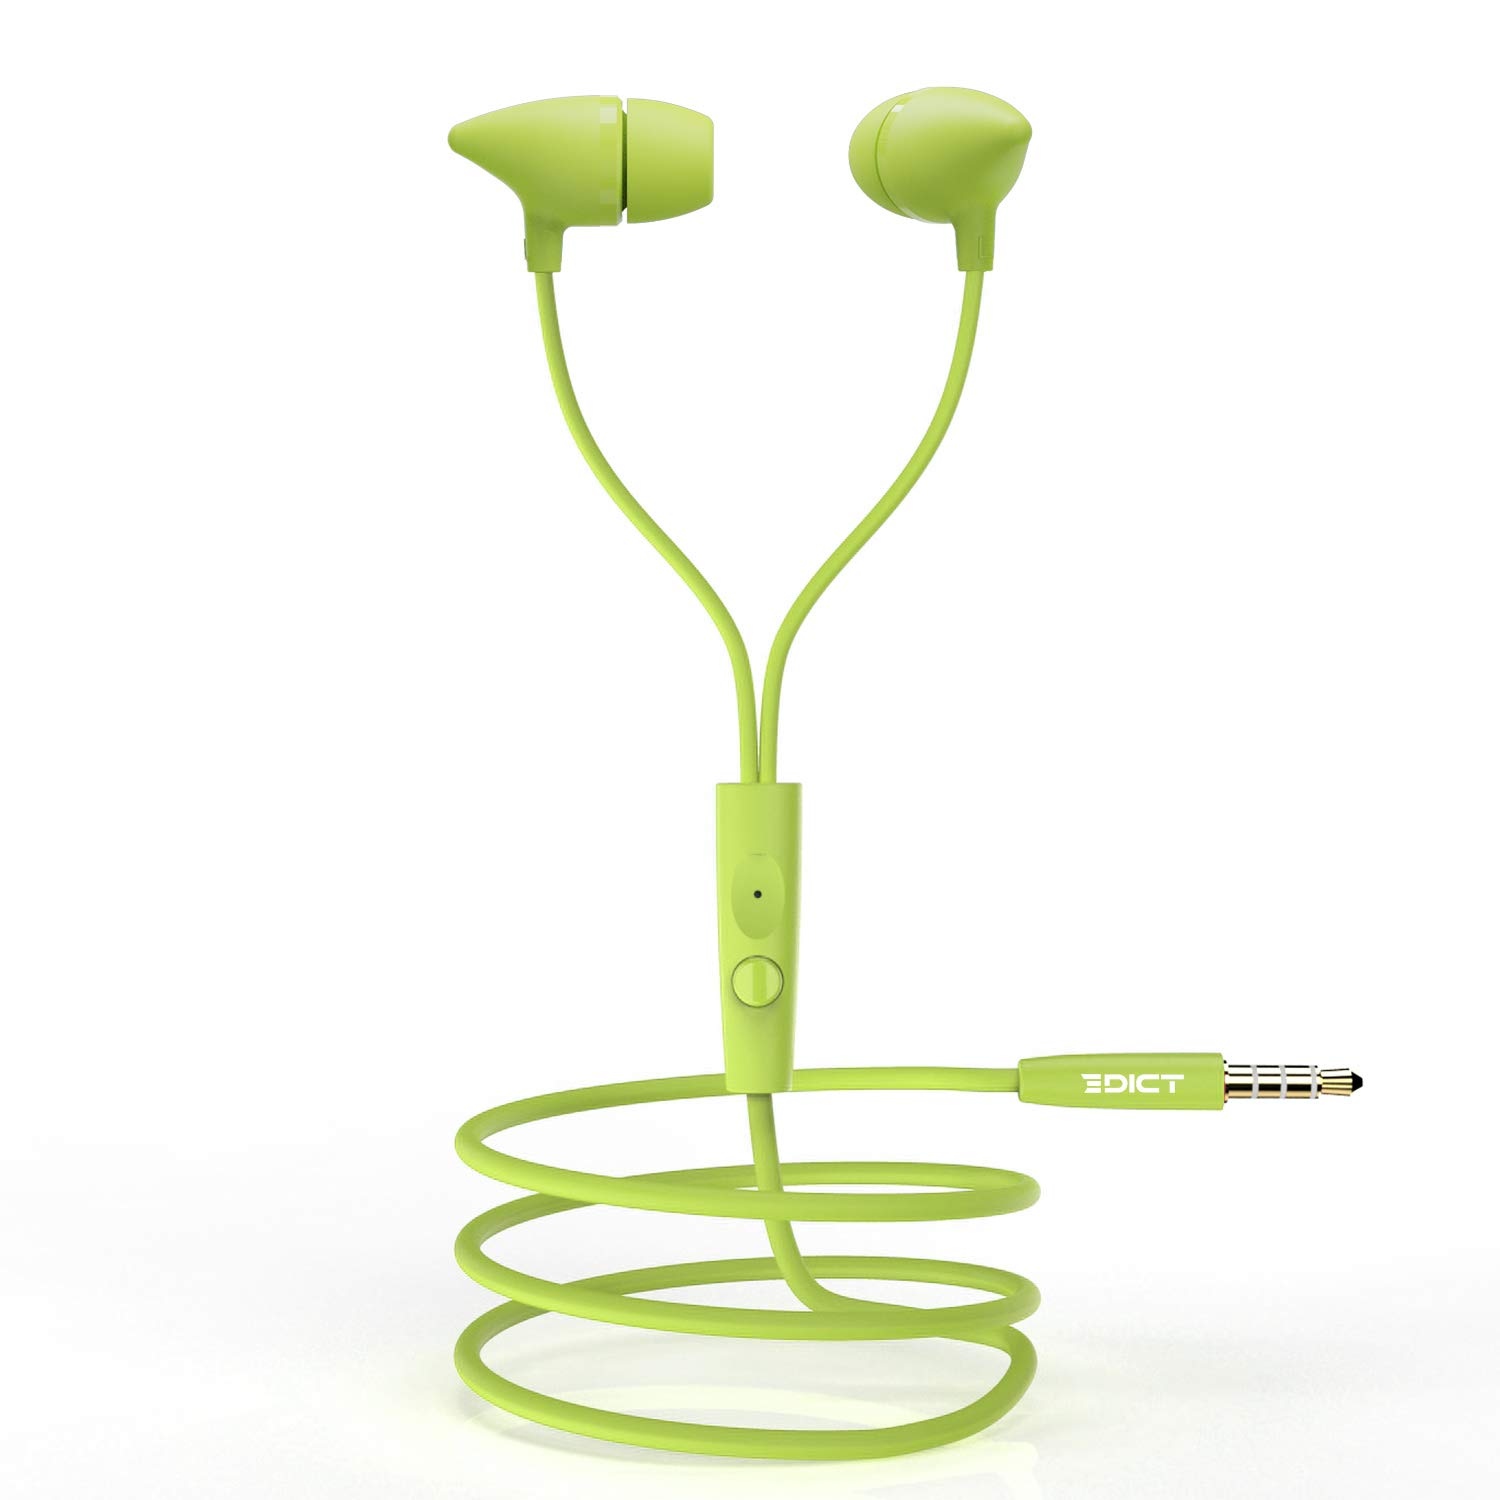 [Apply coupon] EDICT by Boat EEP01 Wired Earphones with Powerful Bass, Perfect Length Cable, Lightweight Ergonomic Design, Voice Assistant, Multi-Function Control & in-Line Mic(Lime)